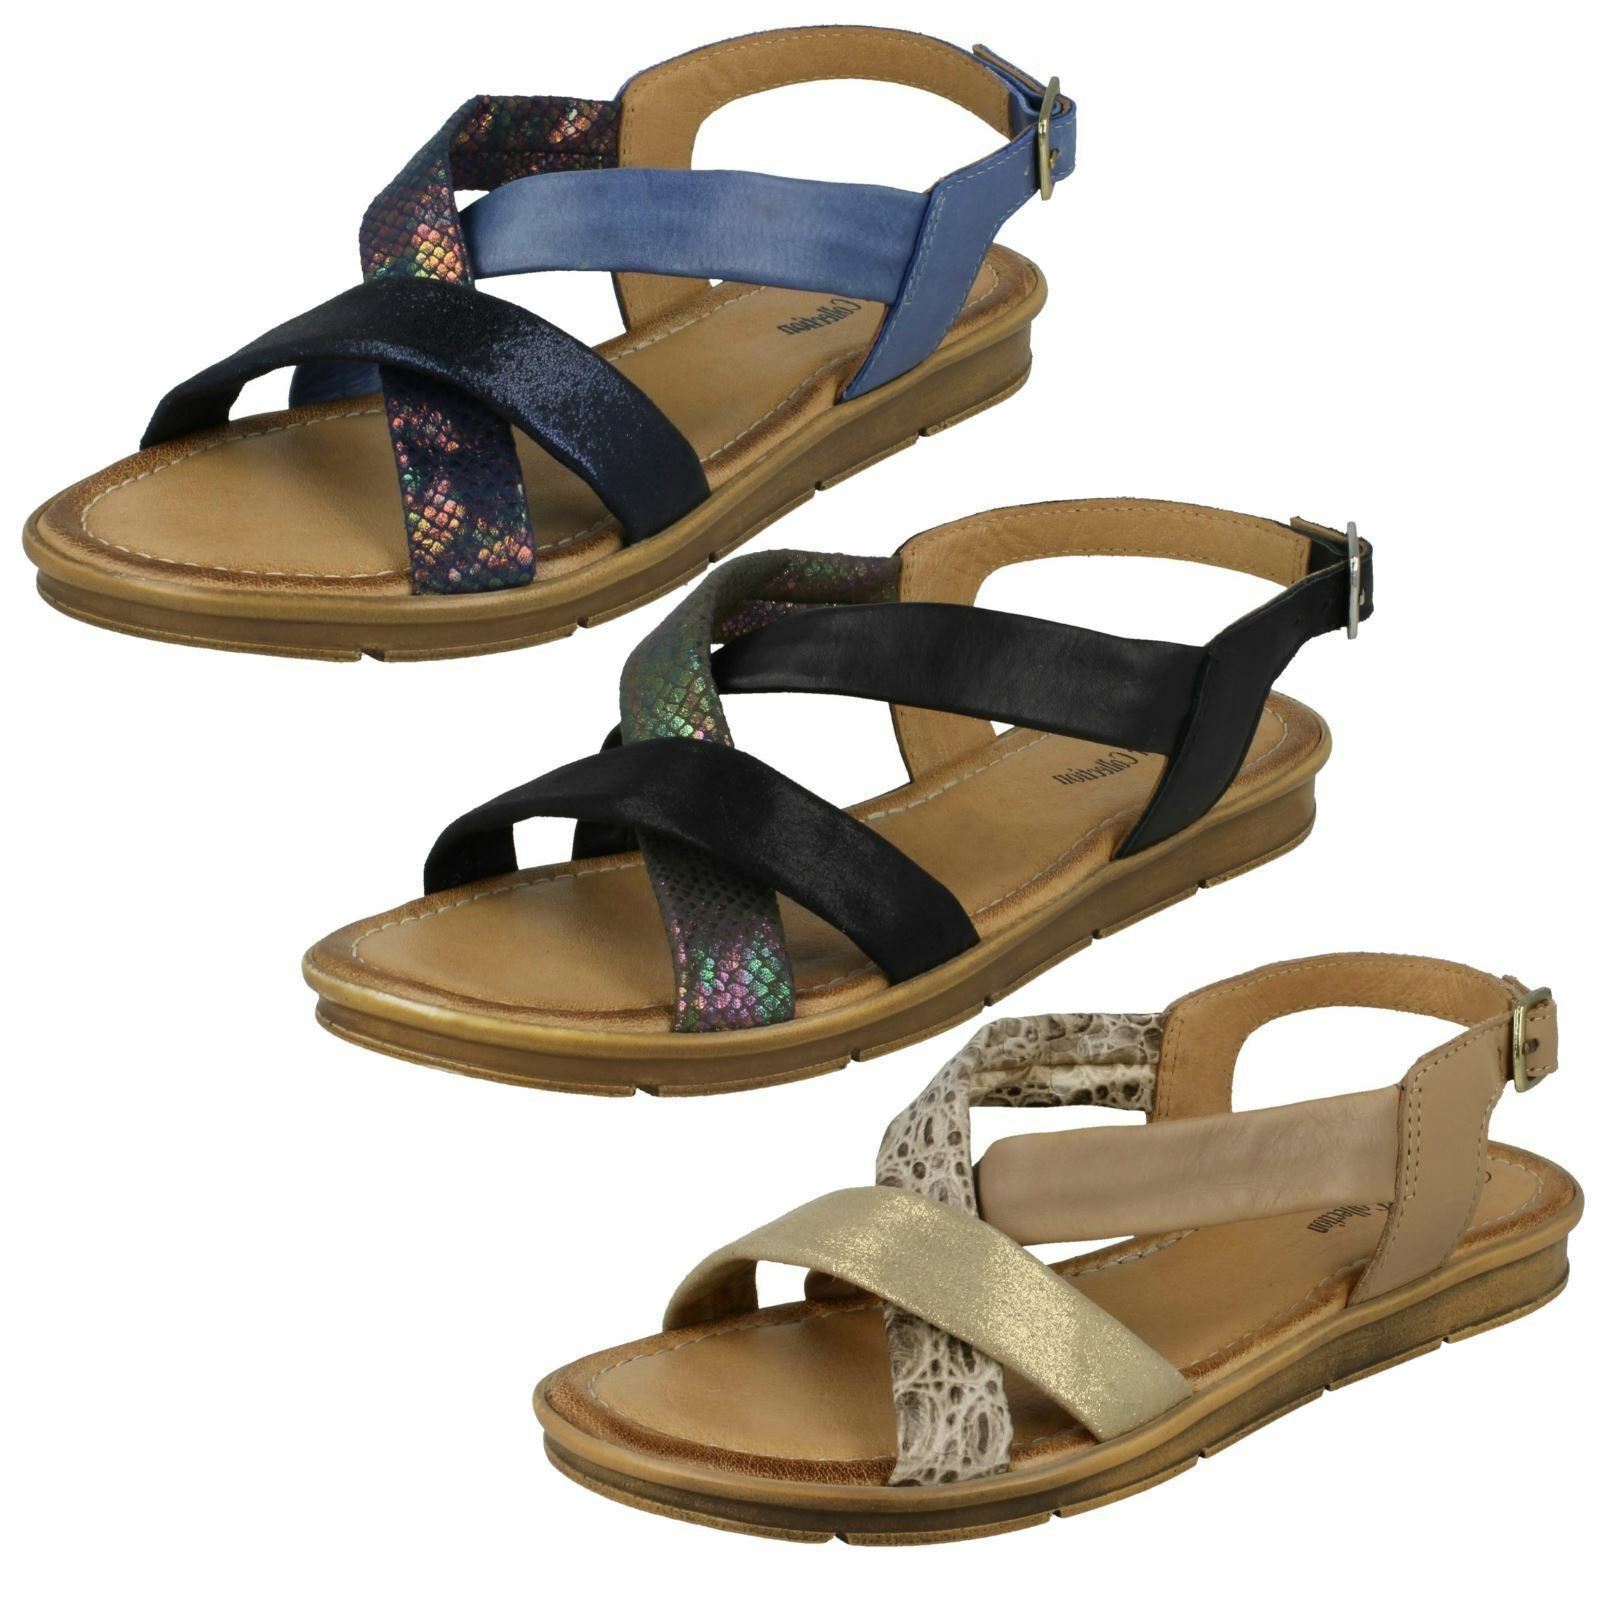 Ladies Leather F00035 Slingback Sandals By Leather Ladies Collection Sale Now  .99 5f8347